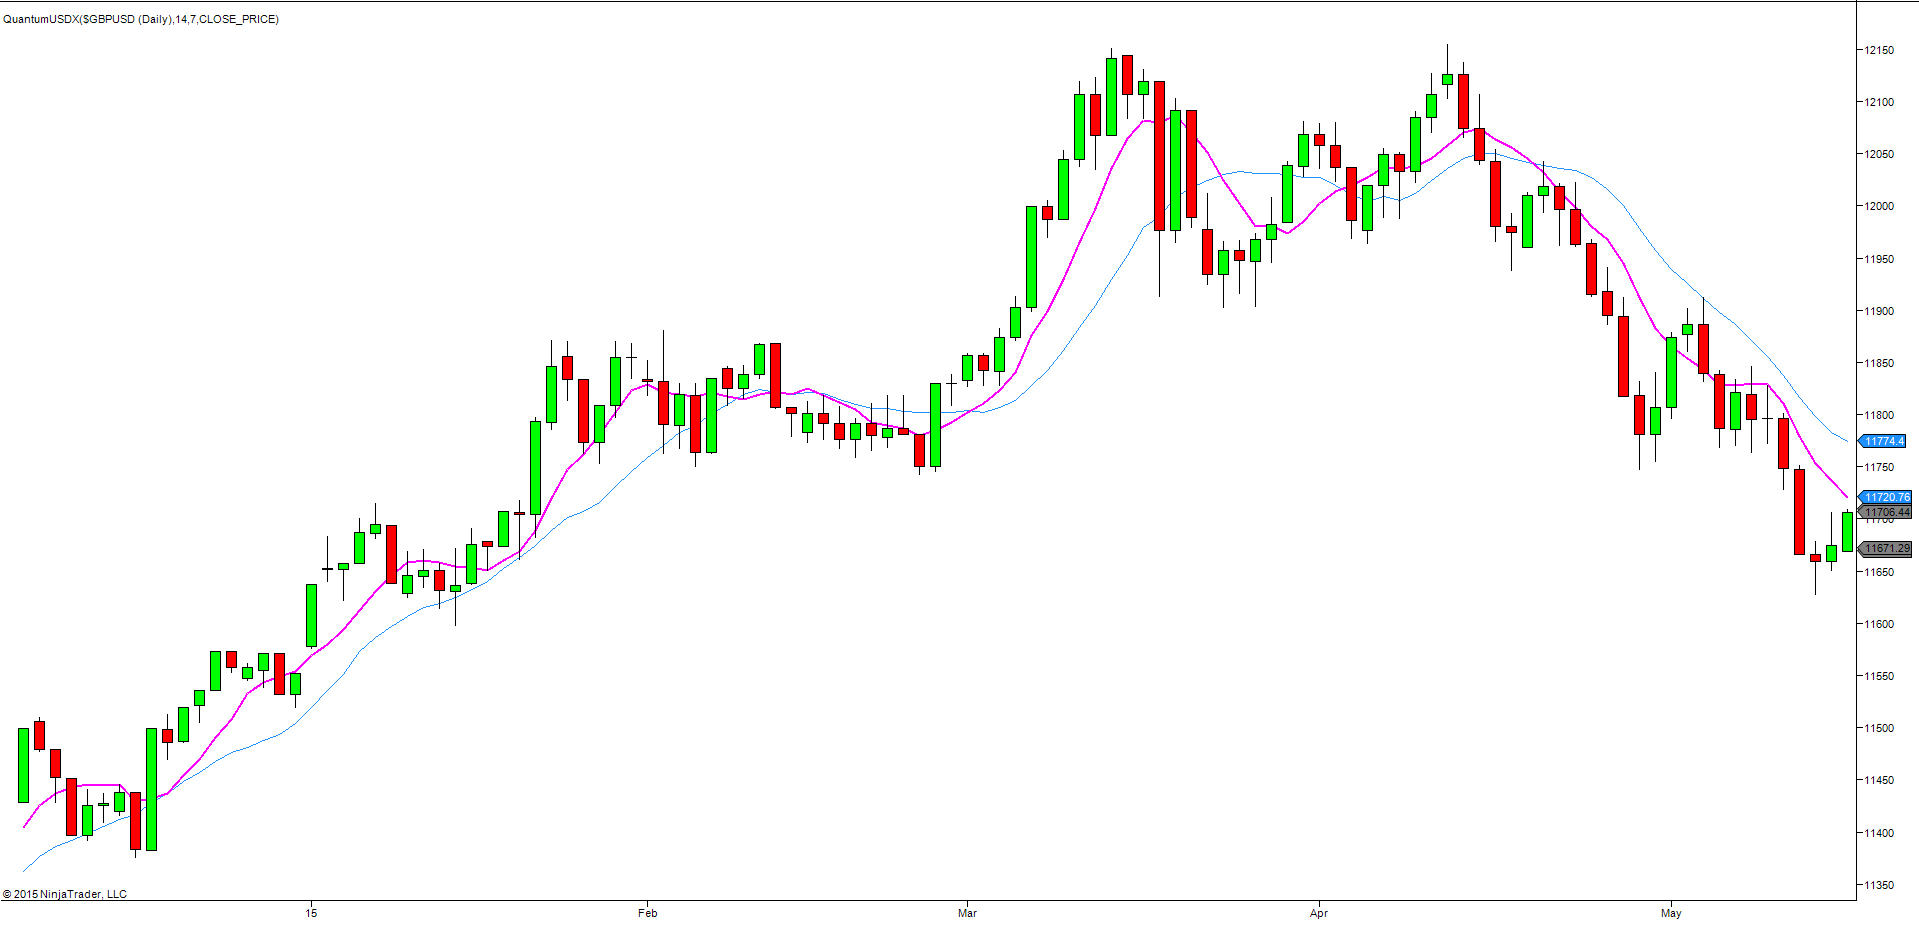 USDX - daily chart